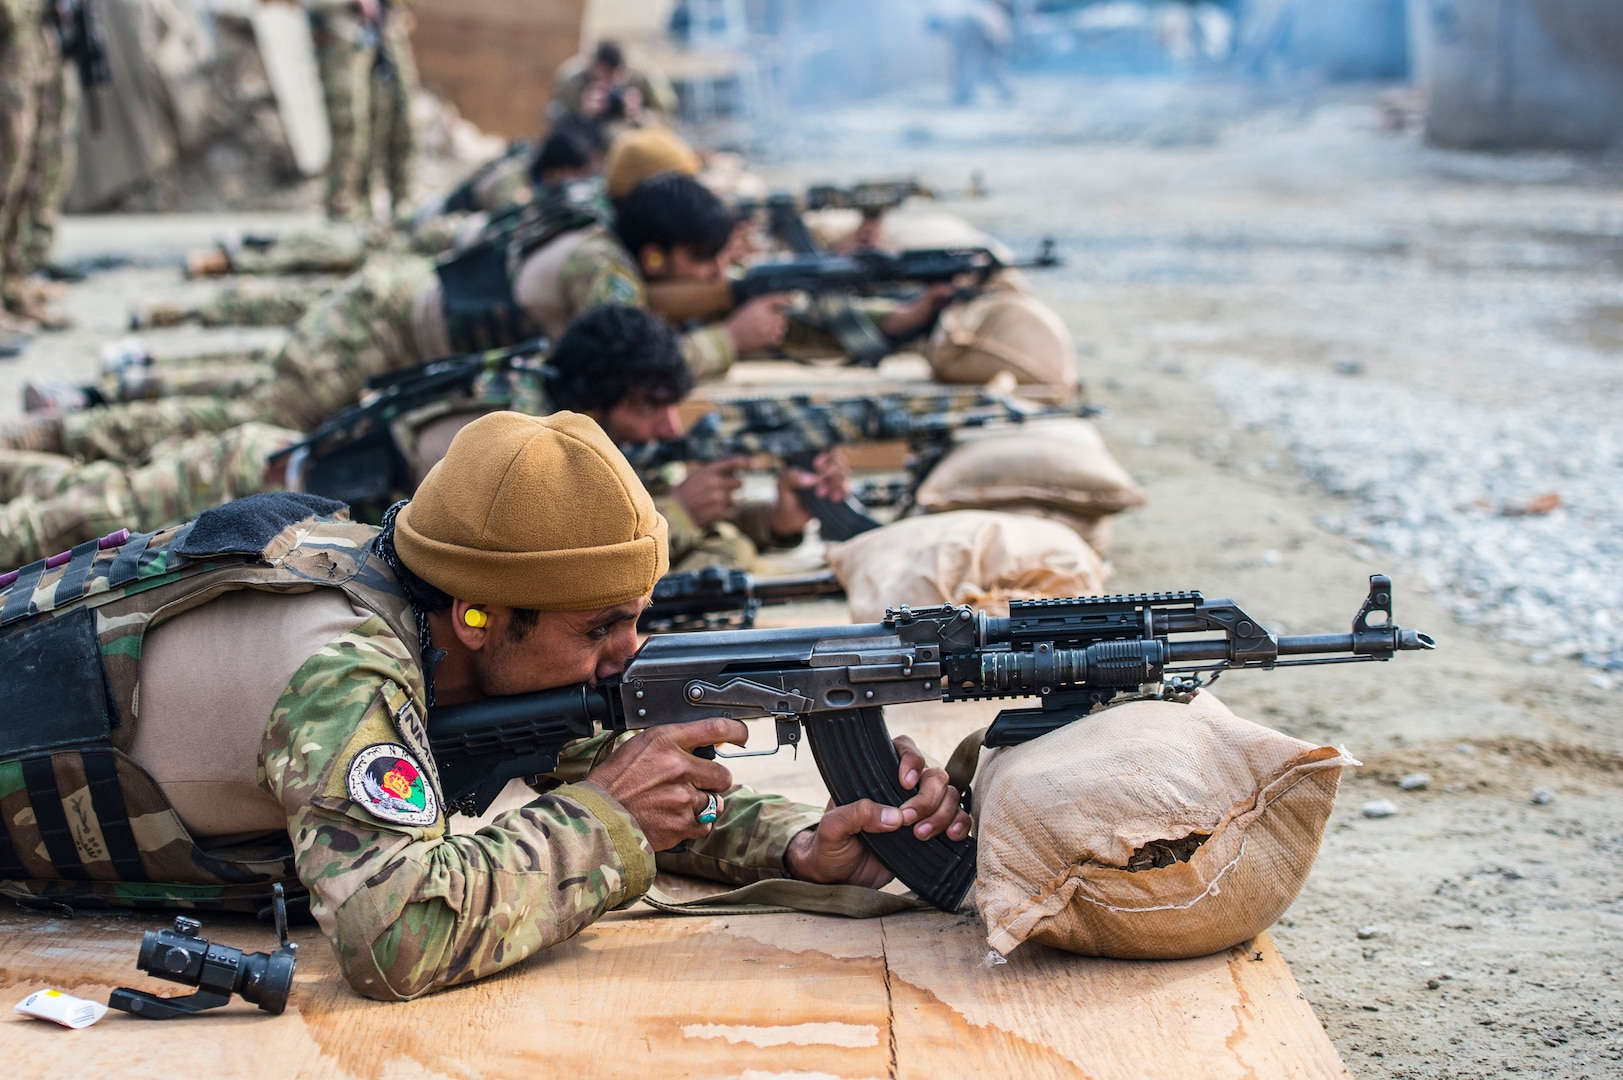 Afghan National Mine Removal Group soldiers zero weapons during marksmanship training at Jalalabad on Jan. 21, 2017. The NMRG is Afghanistan's premier force for route clearance and mine reduction. (U.S. Air Force photo by Staff Sgt. Matthew B. Fredericks)